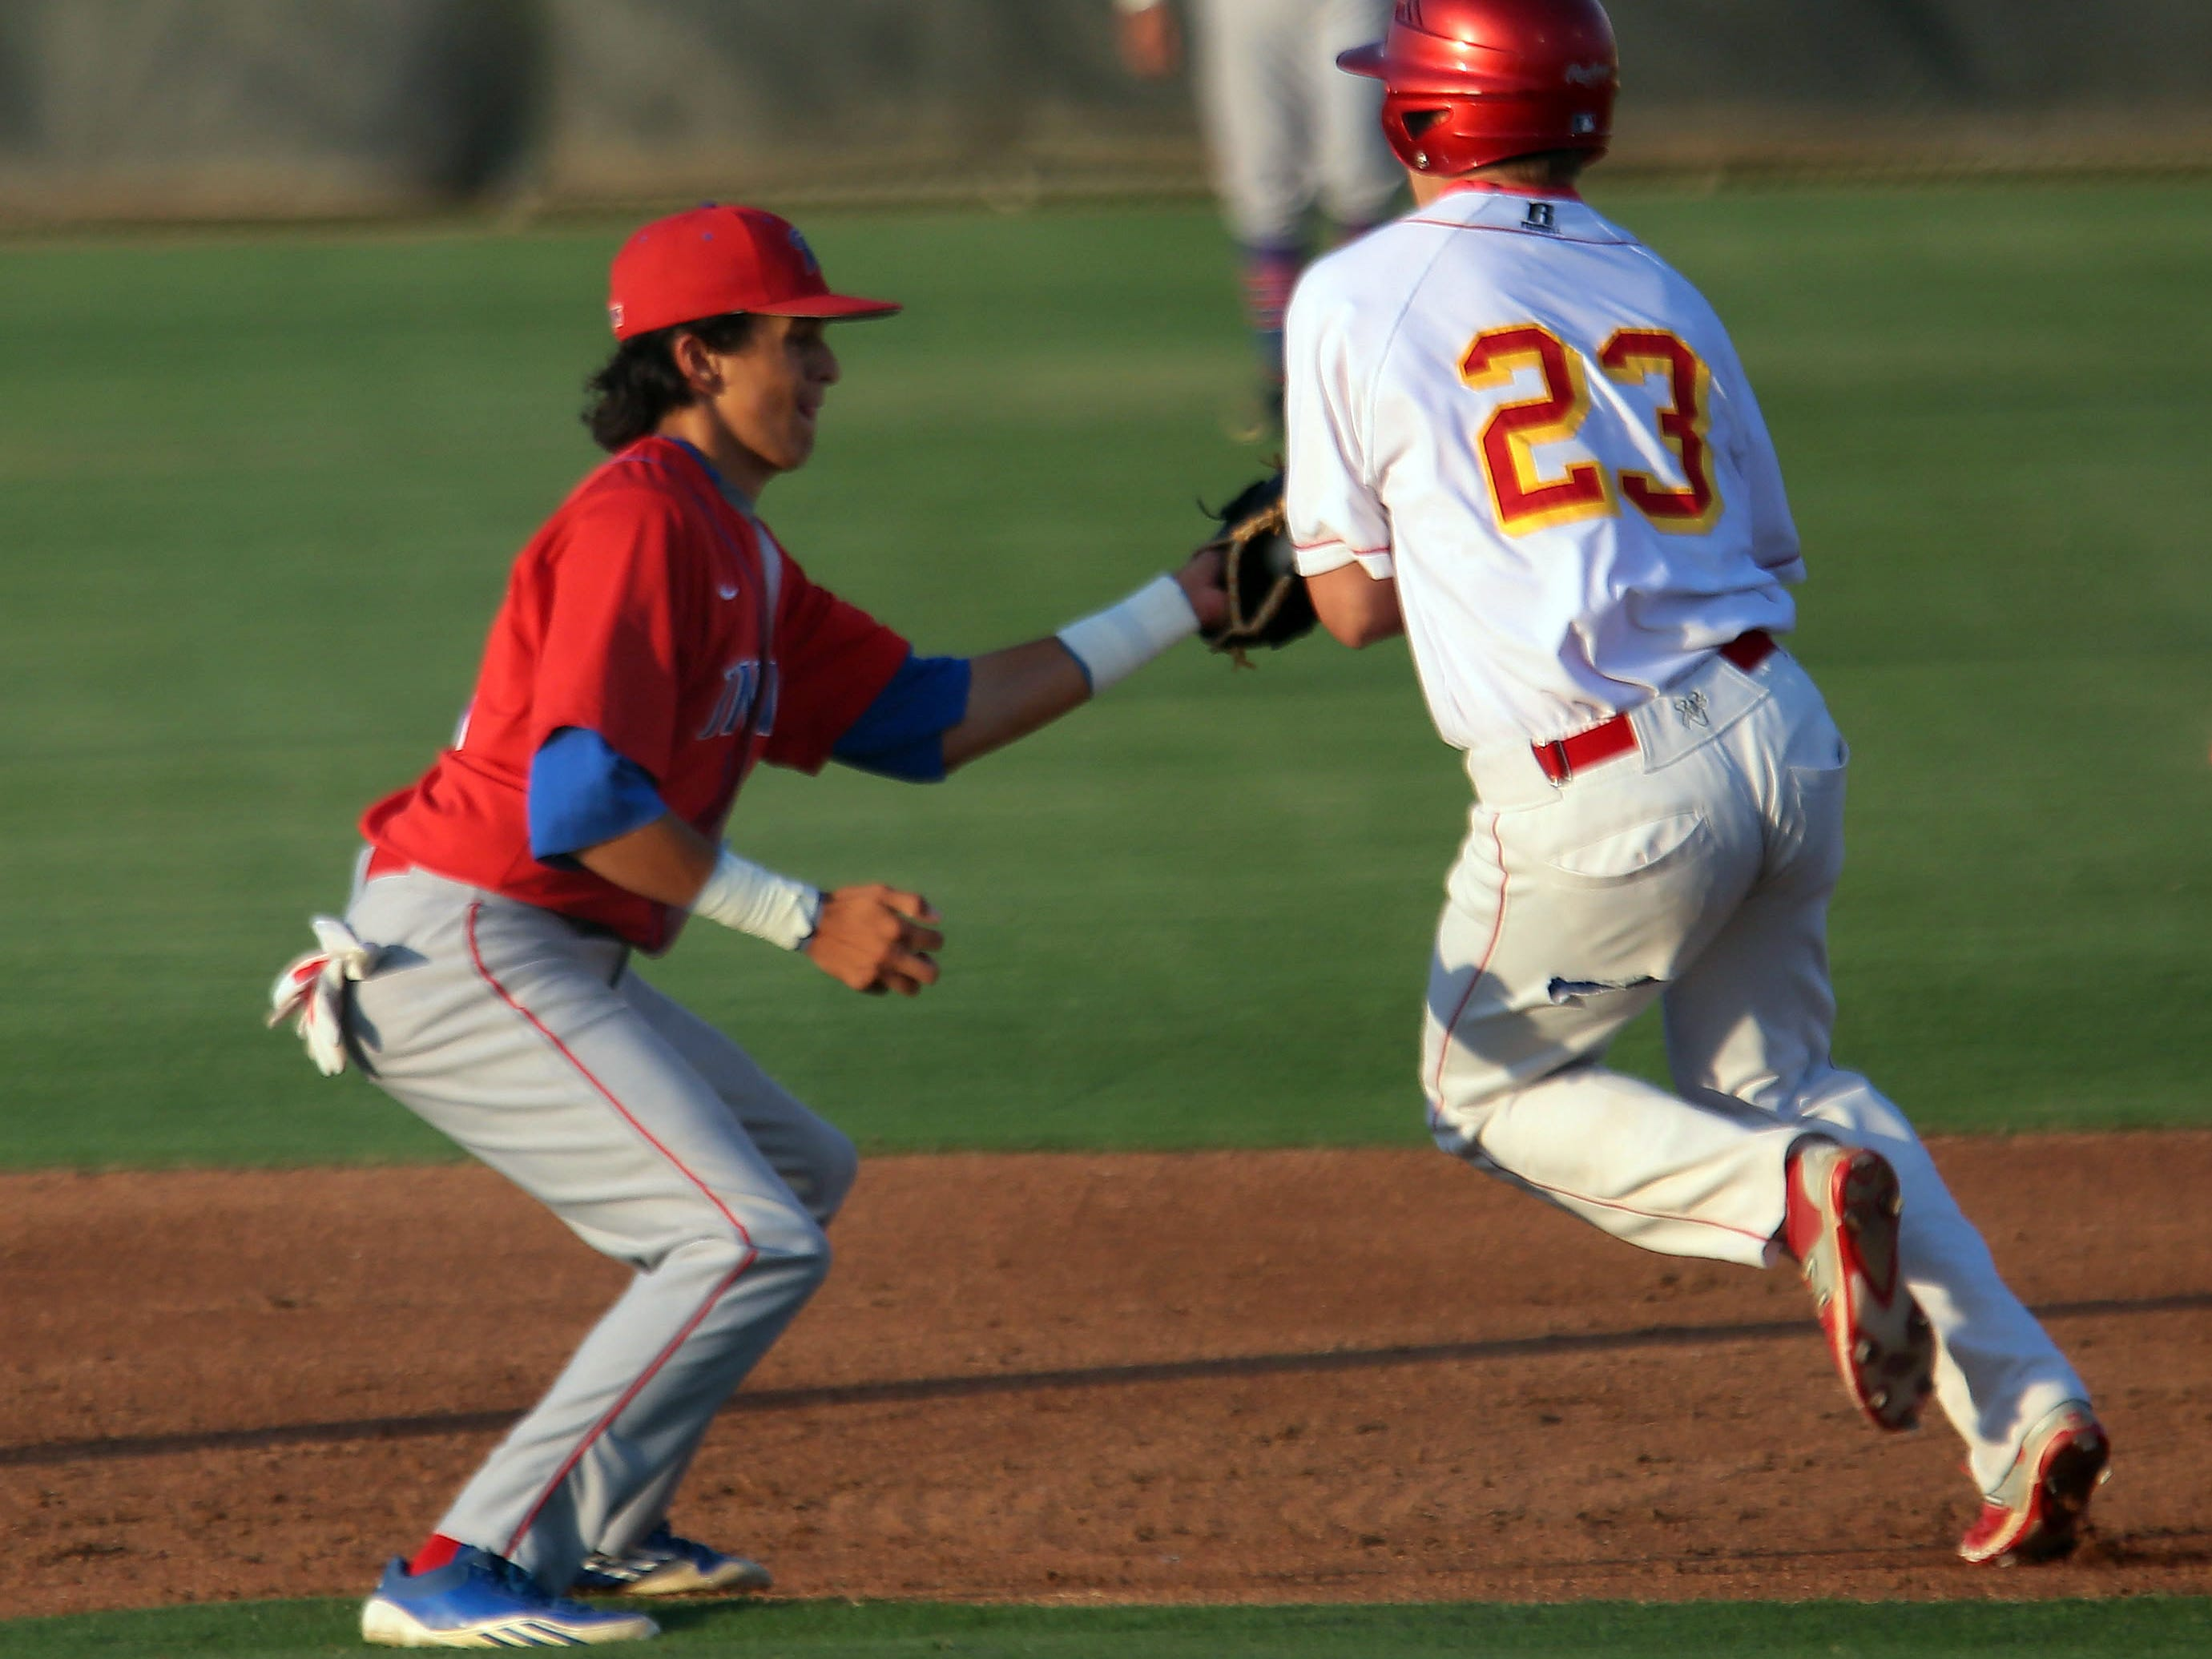 Indio's Michael Munoz tags out Palm Desert's Beau Berryhill trying to reach 2nd in the first inning on Tuesday in Palm Desert.